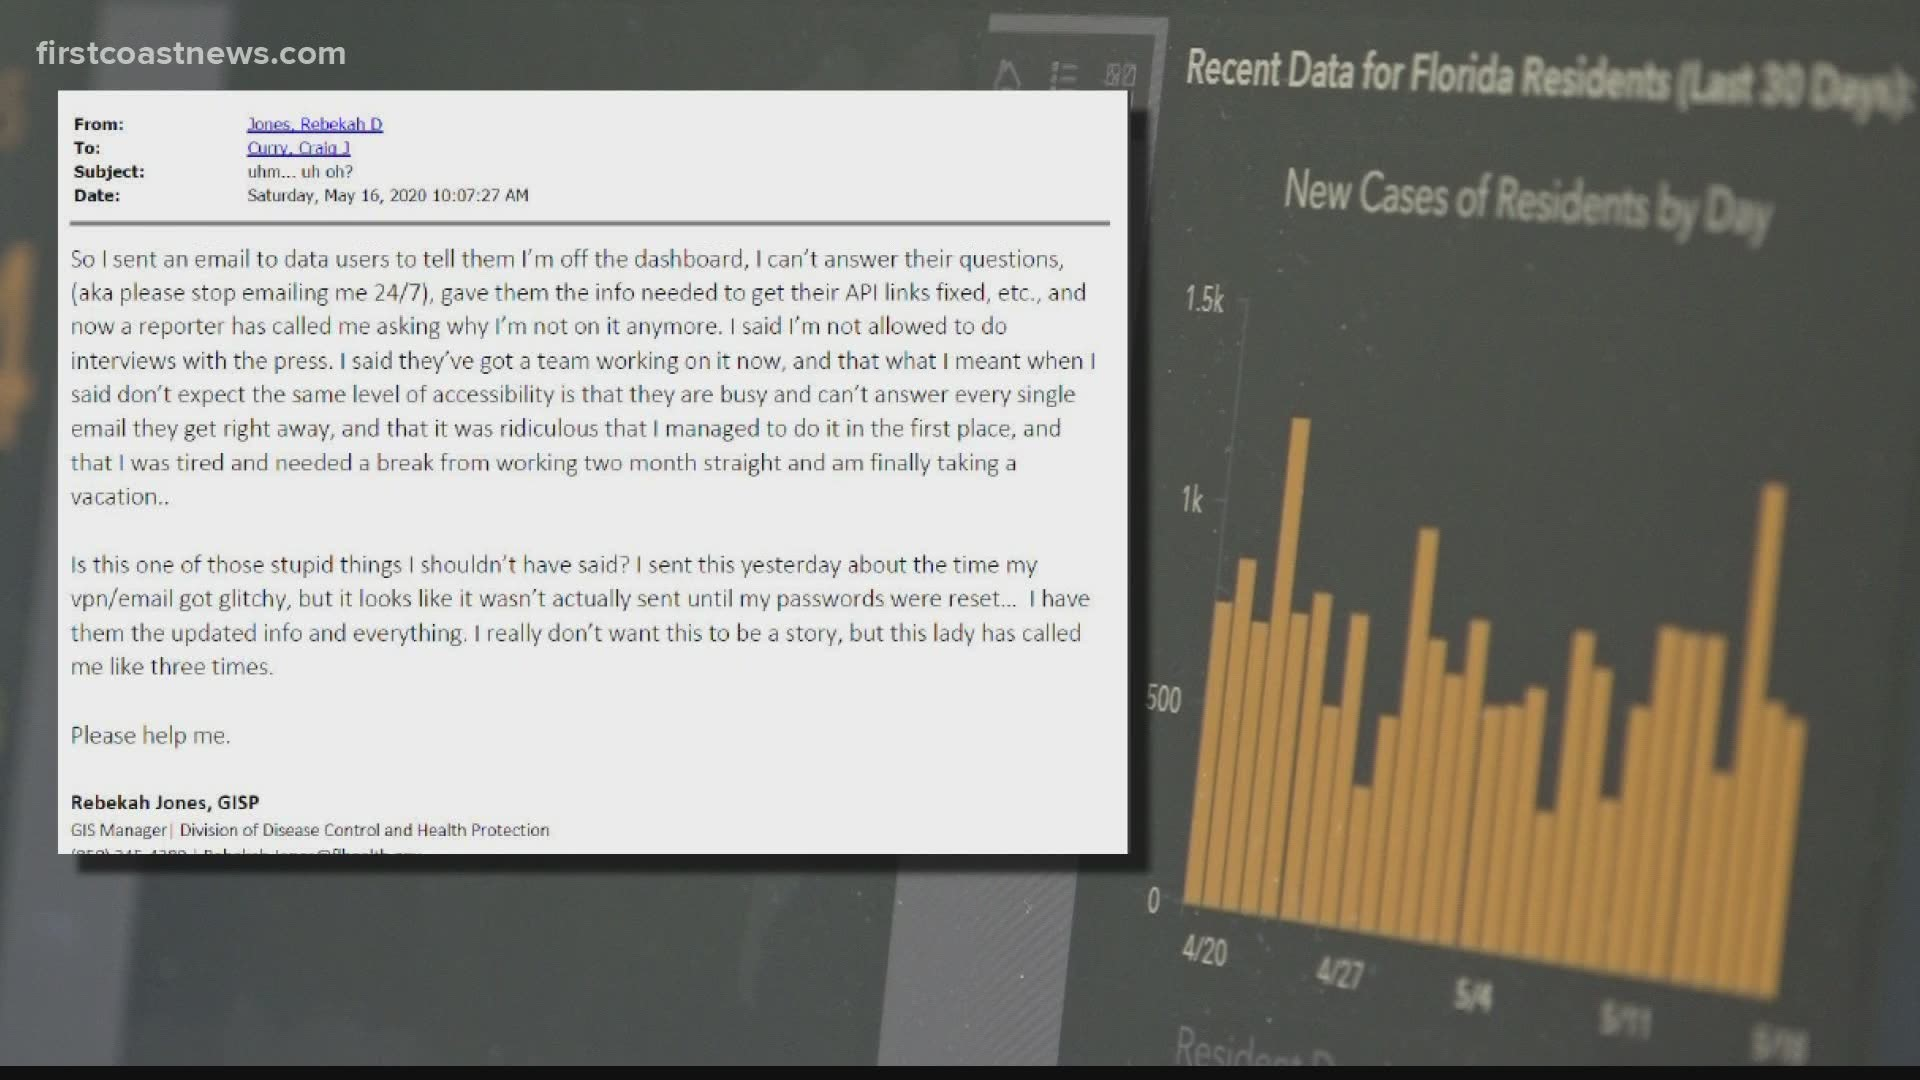 Governor S Office Says Former Manager Of Florida Covid 19 Dashboard Exhibited Insubordination Asked To Resign By Thursday Firstcoastnews Com